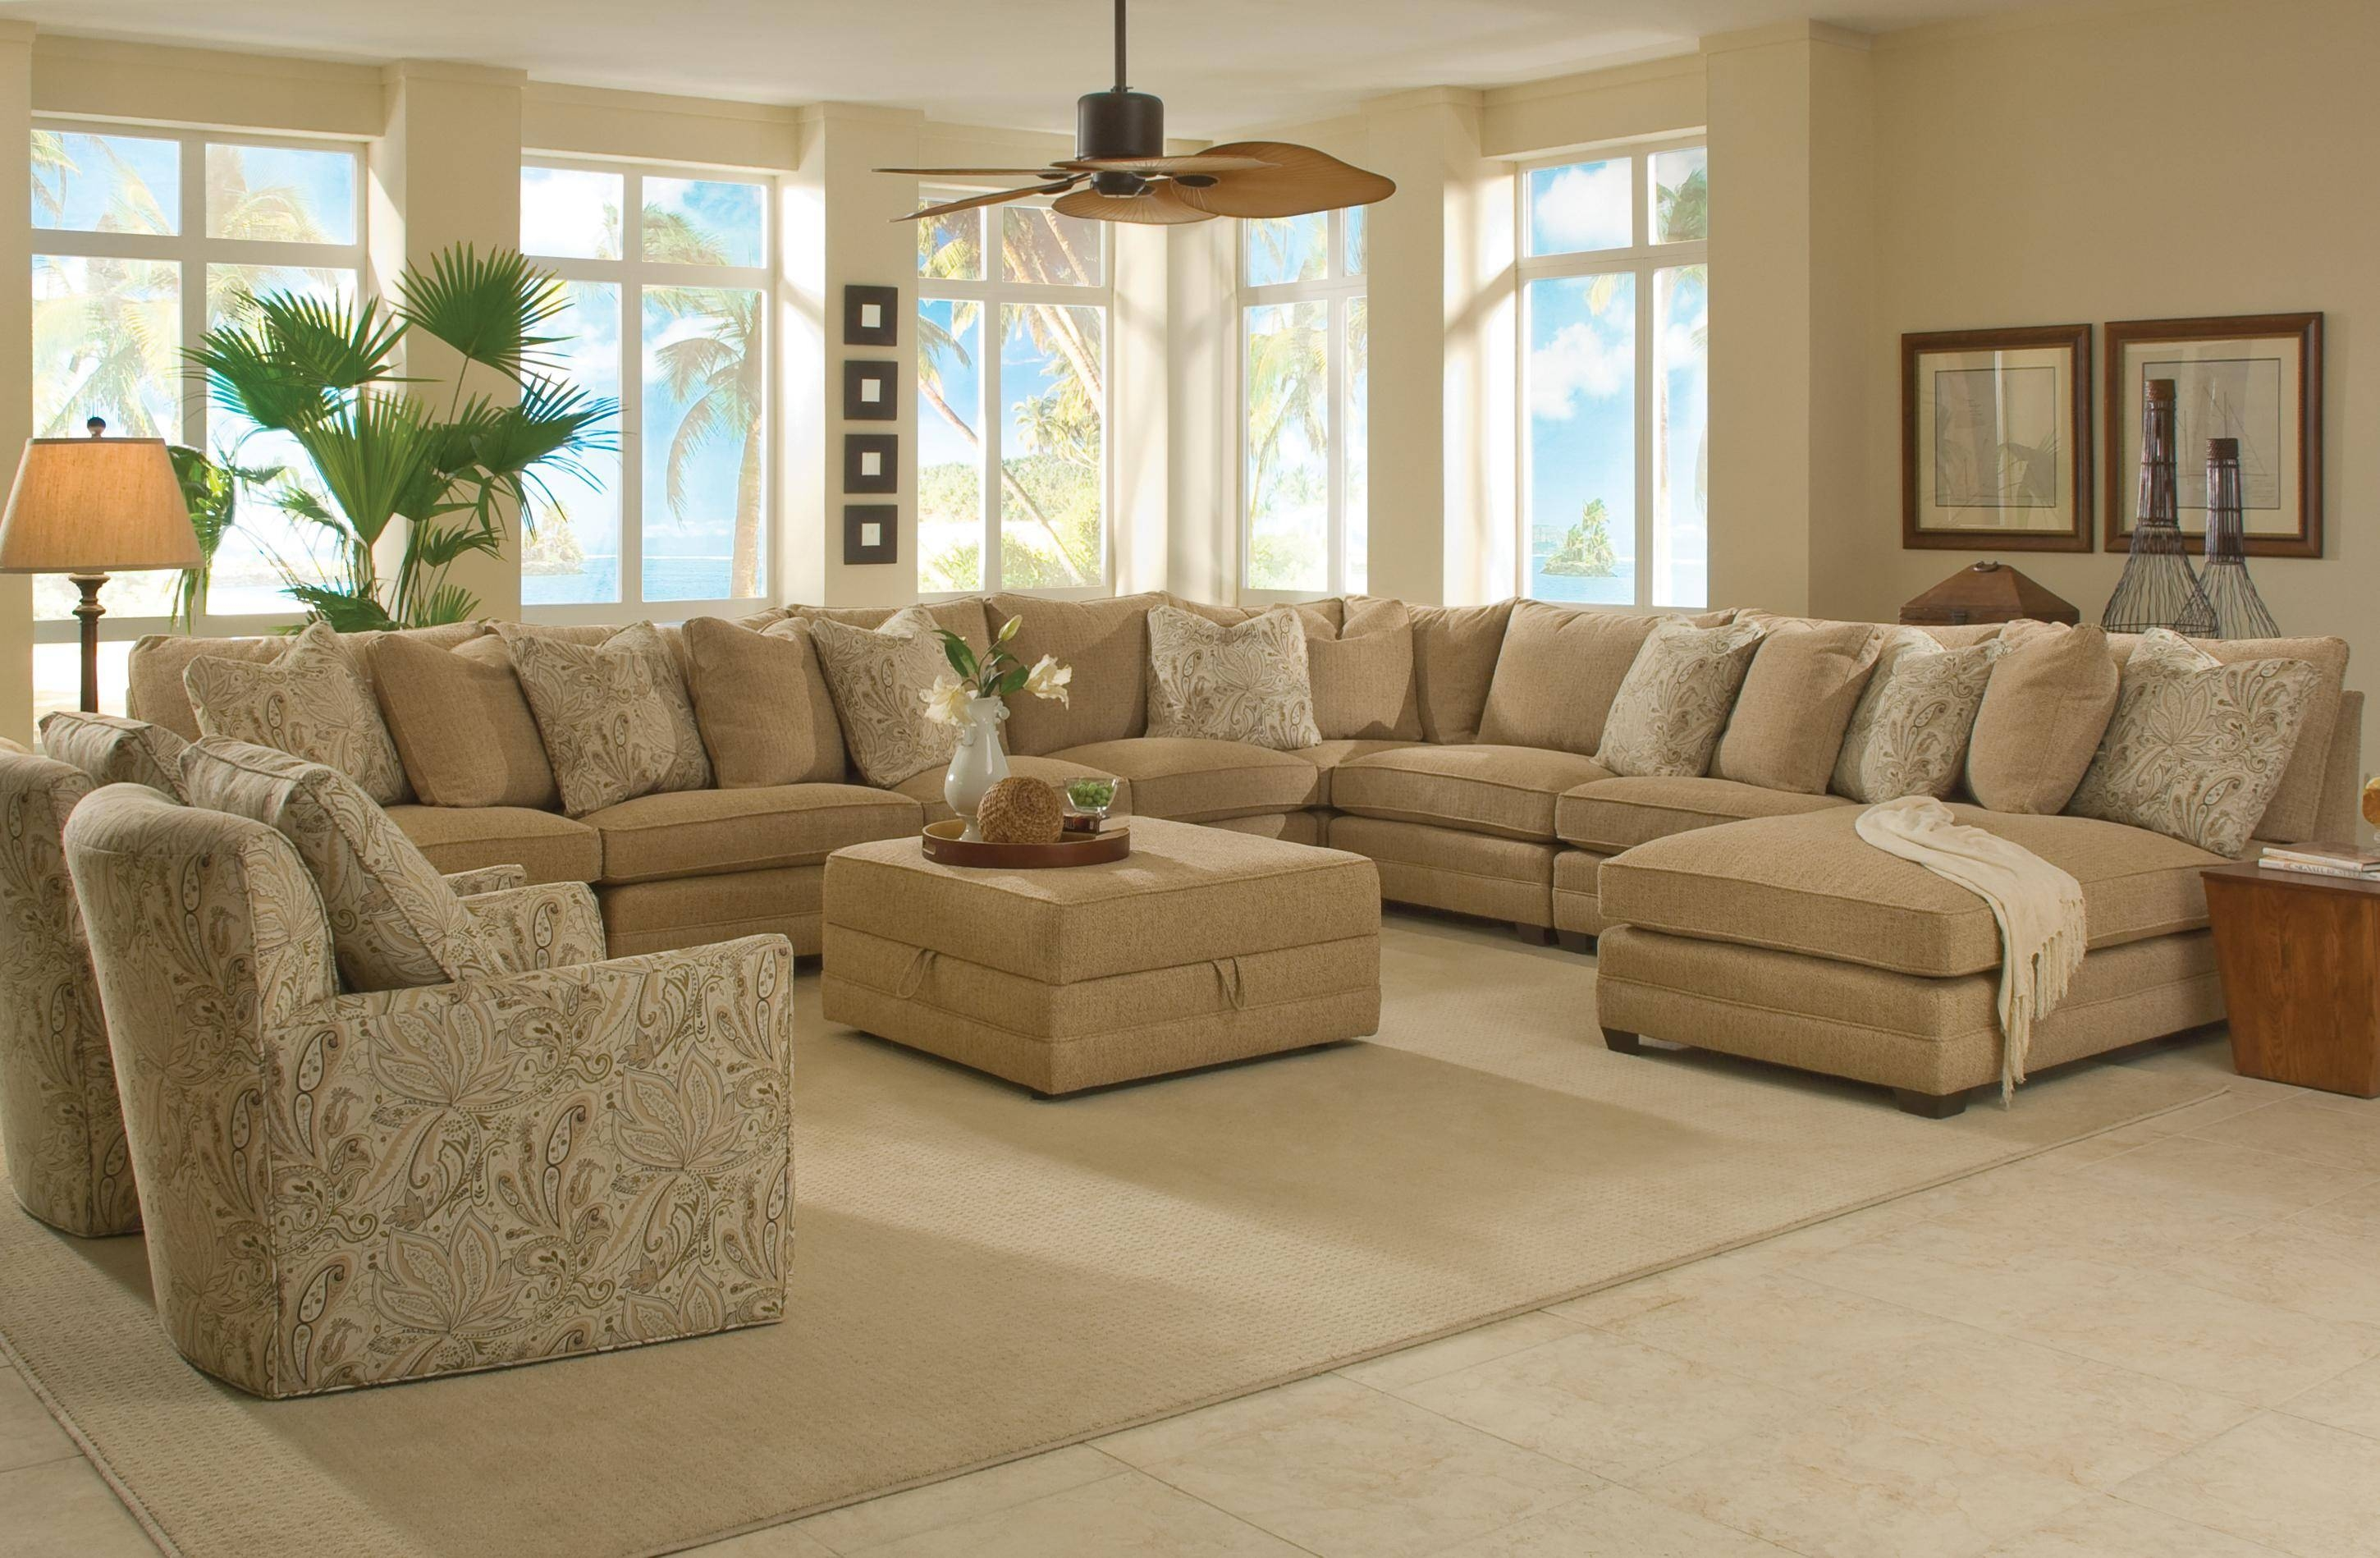 Sectional Sofas Austin Robert Michael Furniture Austin 8 Best